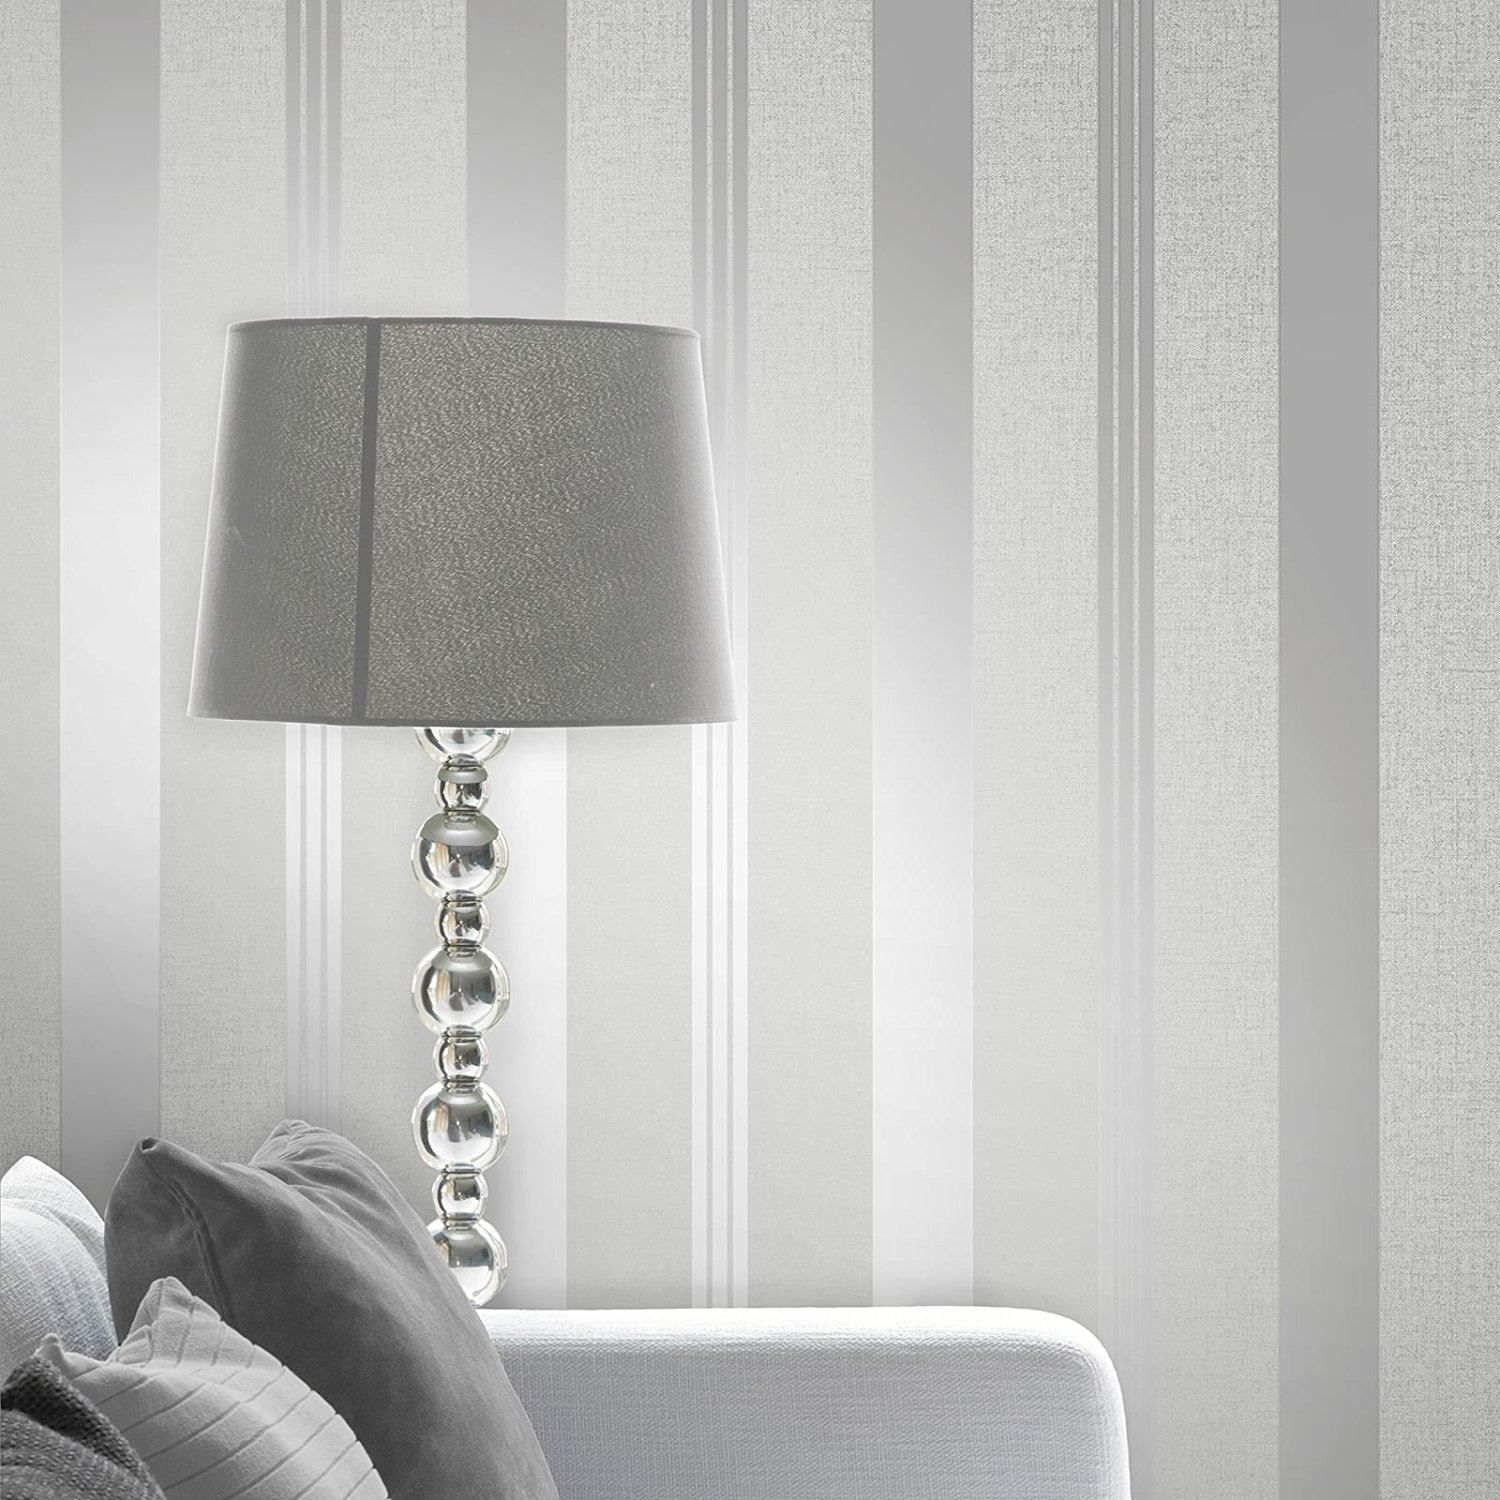 Silver Grey Wallpaper Various Designs Luxury Glitter Metallic Modern Shiny Ebay Striped Wallpaper Striped Wallpaper Living Room Silver Grey Wallpaper